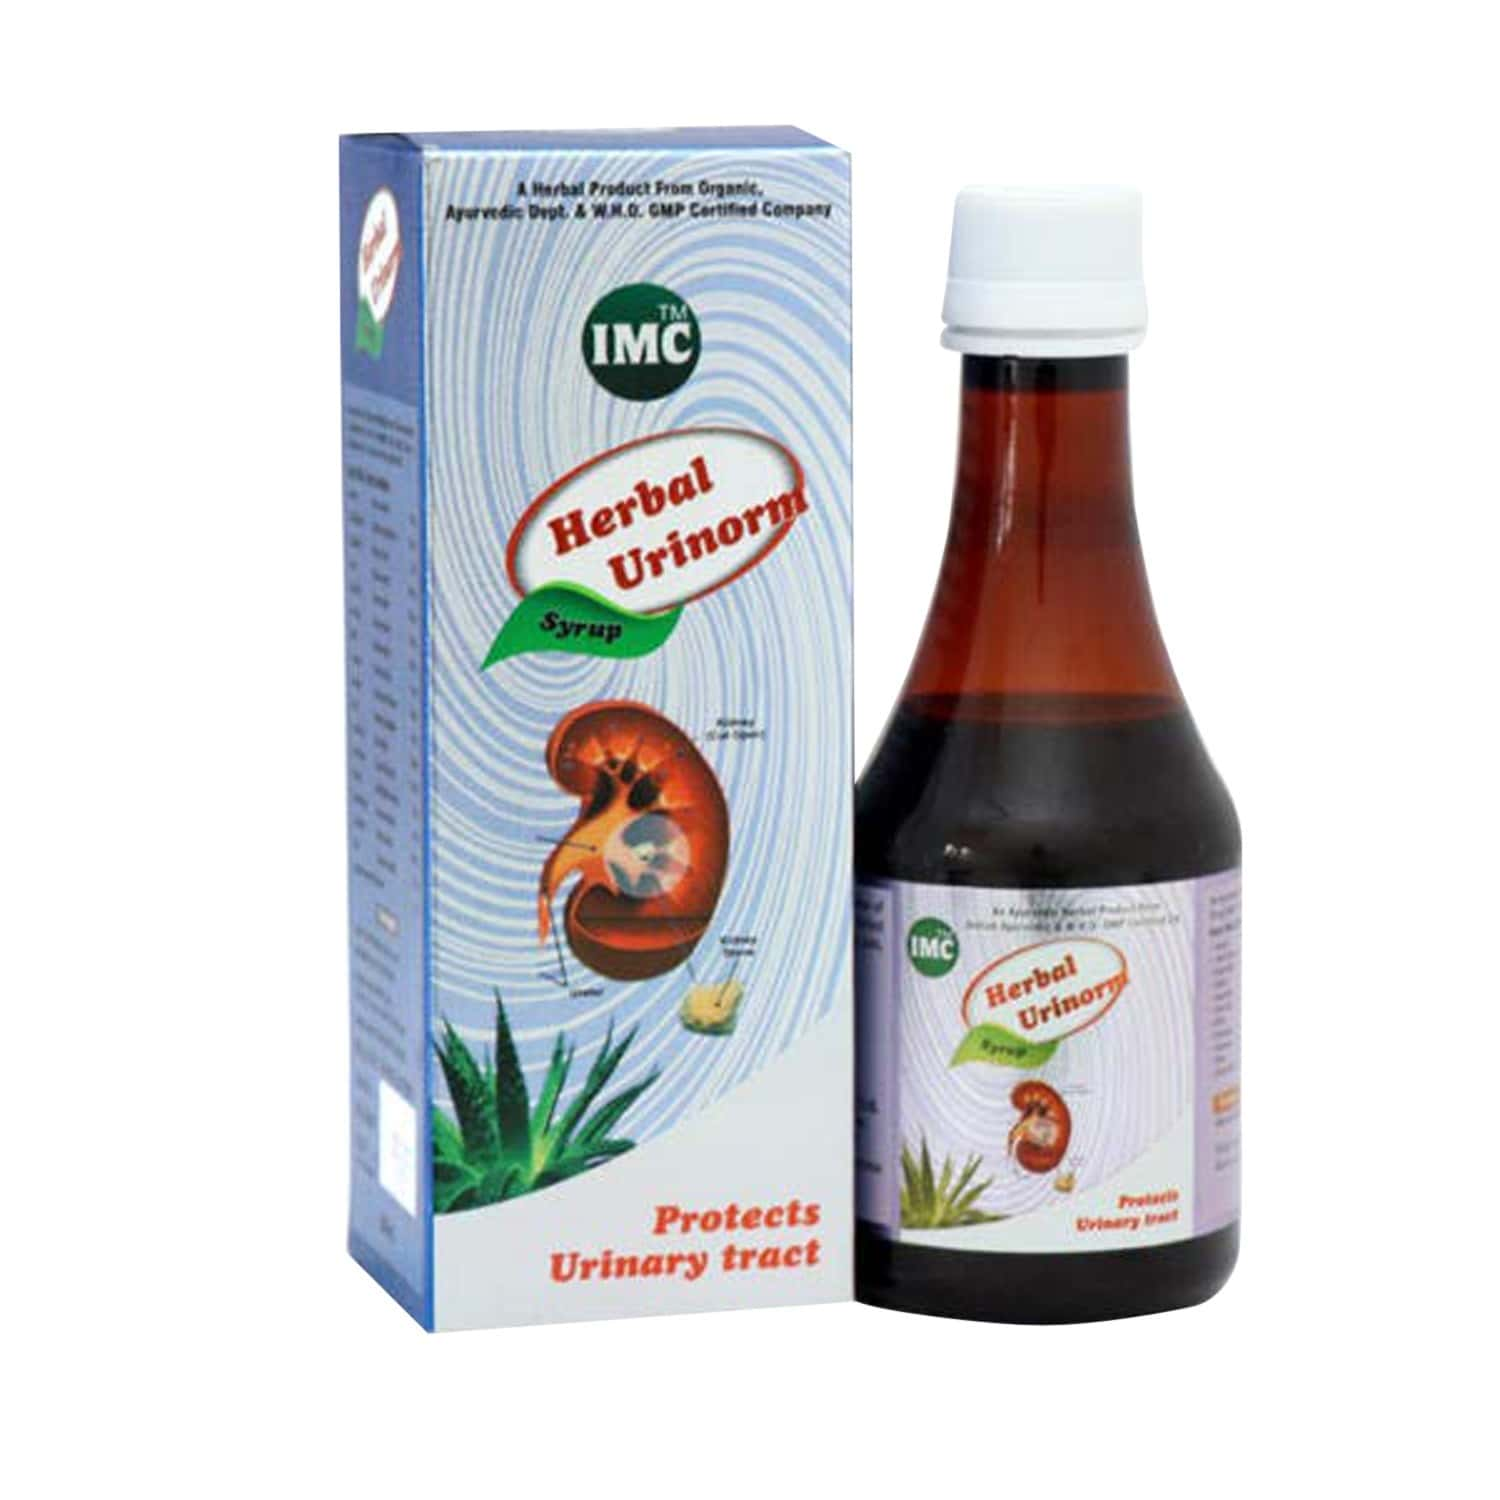 Imc Herbal Urinorm Pack Of 2 Syrup 2*200 Ml